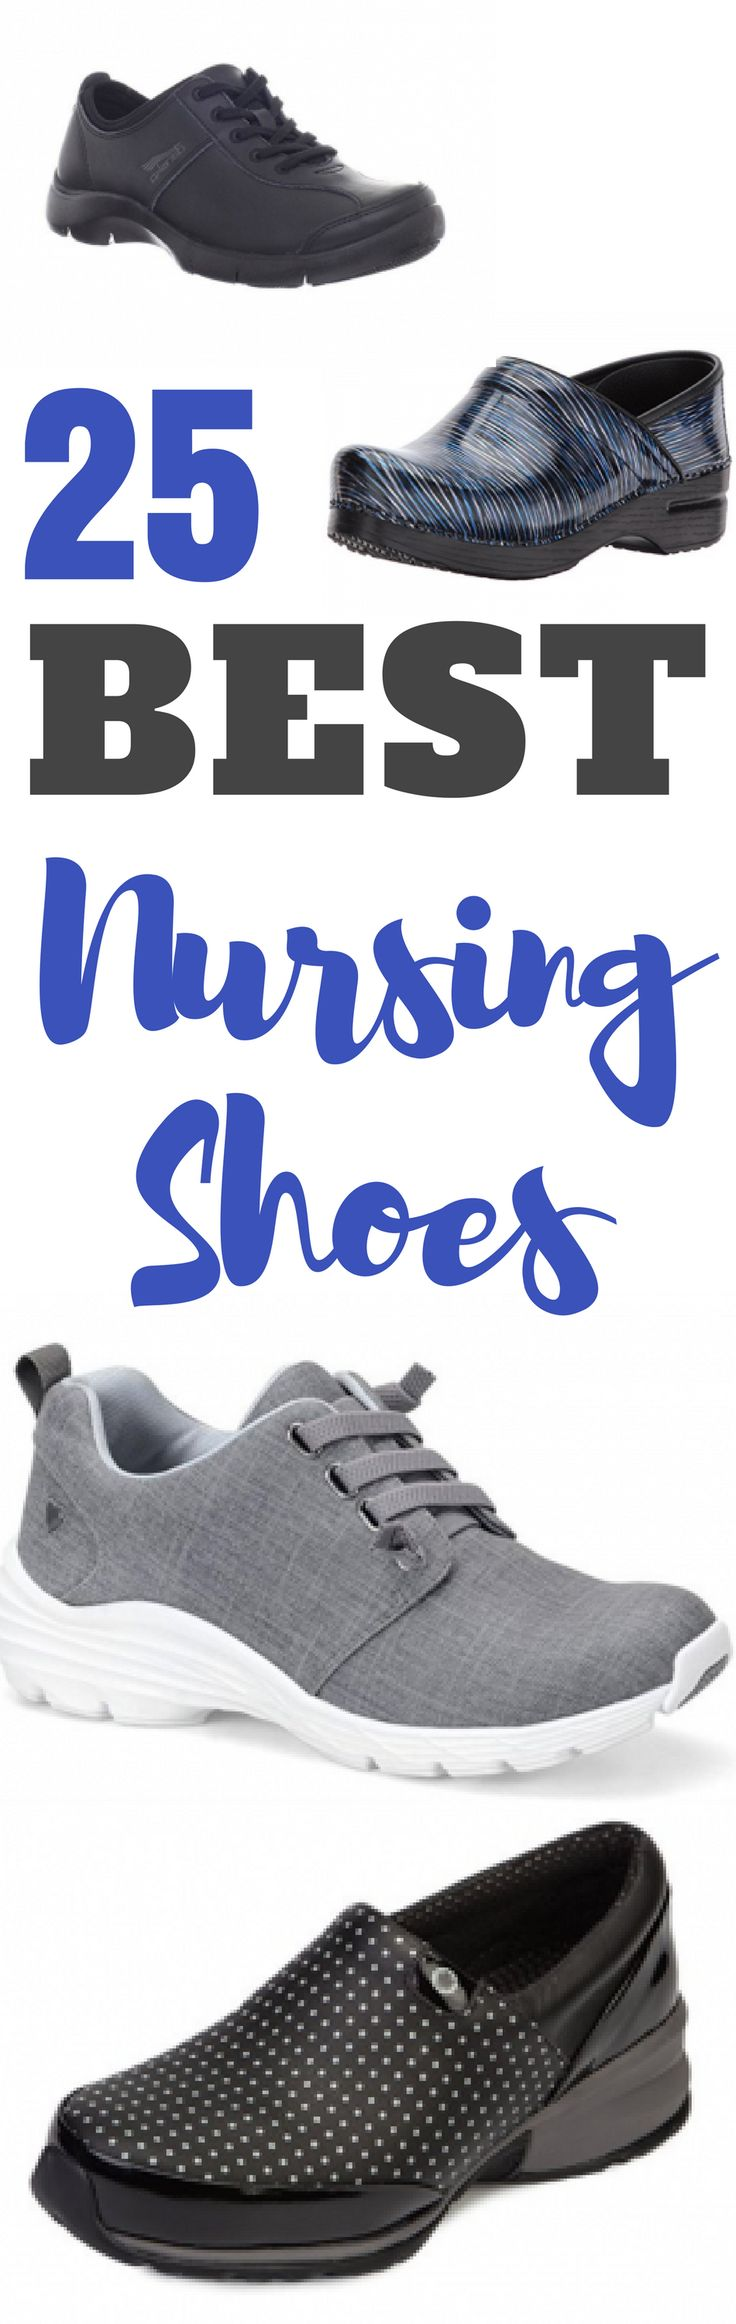 If you're a nurse, you absolutely need something special to wear on your feet, whether it's cute white nursing shoes, crocs for nurses, or even wide width nursing clogs. In general, you need something high-quality, comfortable and water-resistant. Your shoes will have to hold up under tons of use, feel good after a long shift, and be safe to wear around spills or when you run down the halls. And for some nurses, having an attractive shoe is just as important as having a practical one —…